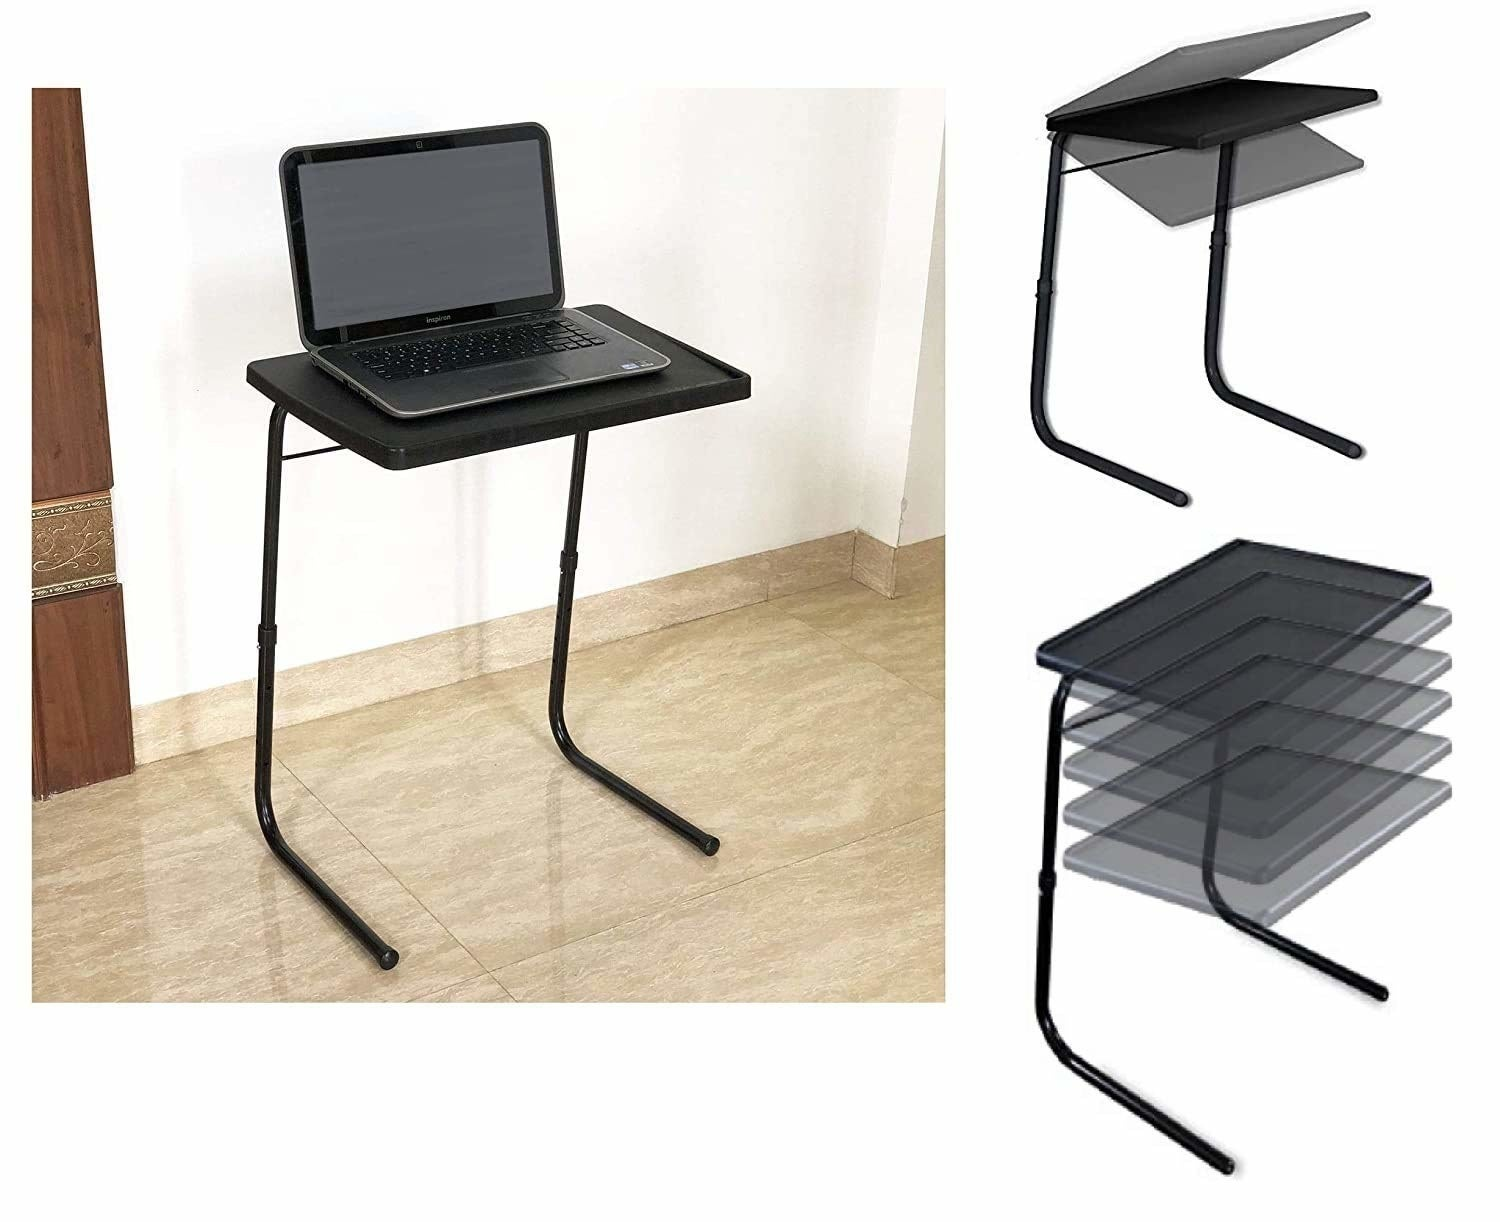 A table with a laptop on it, next to an inset showing the table being folded